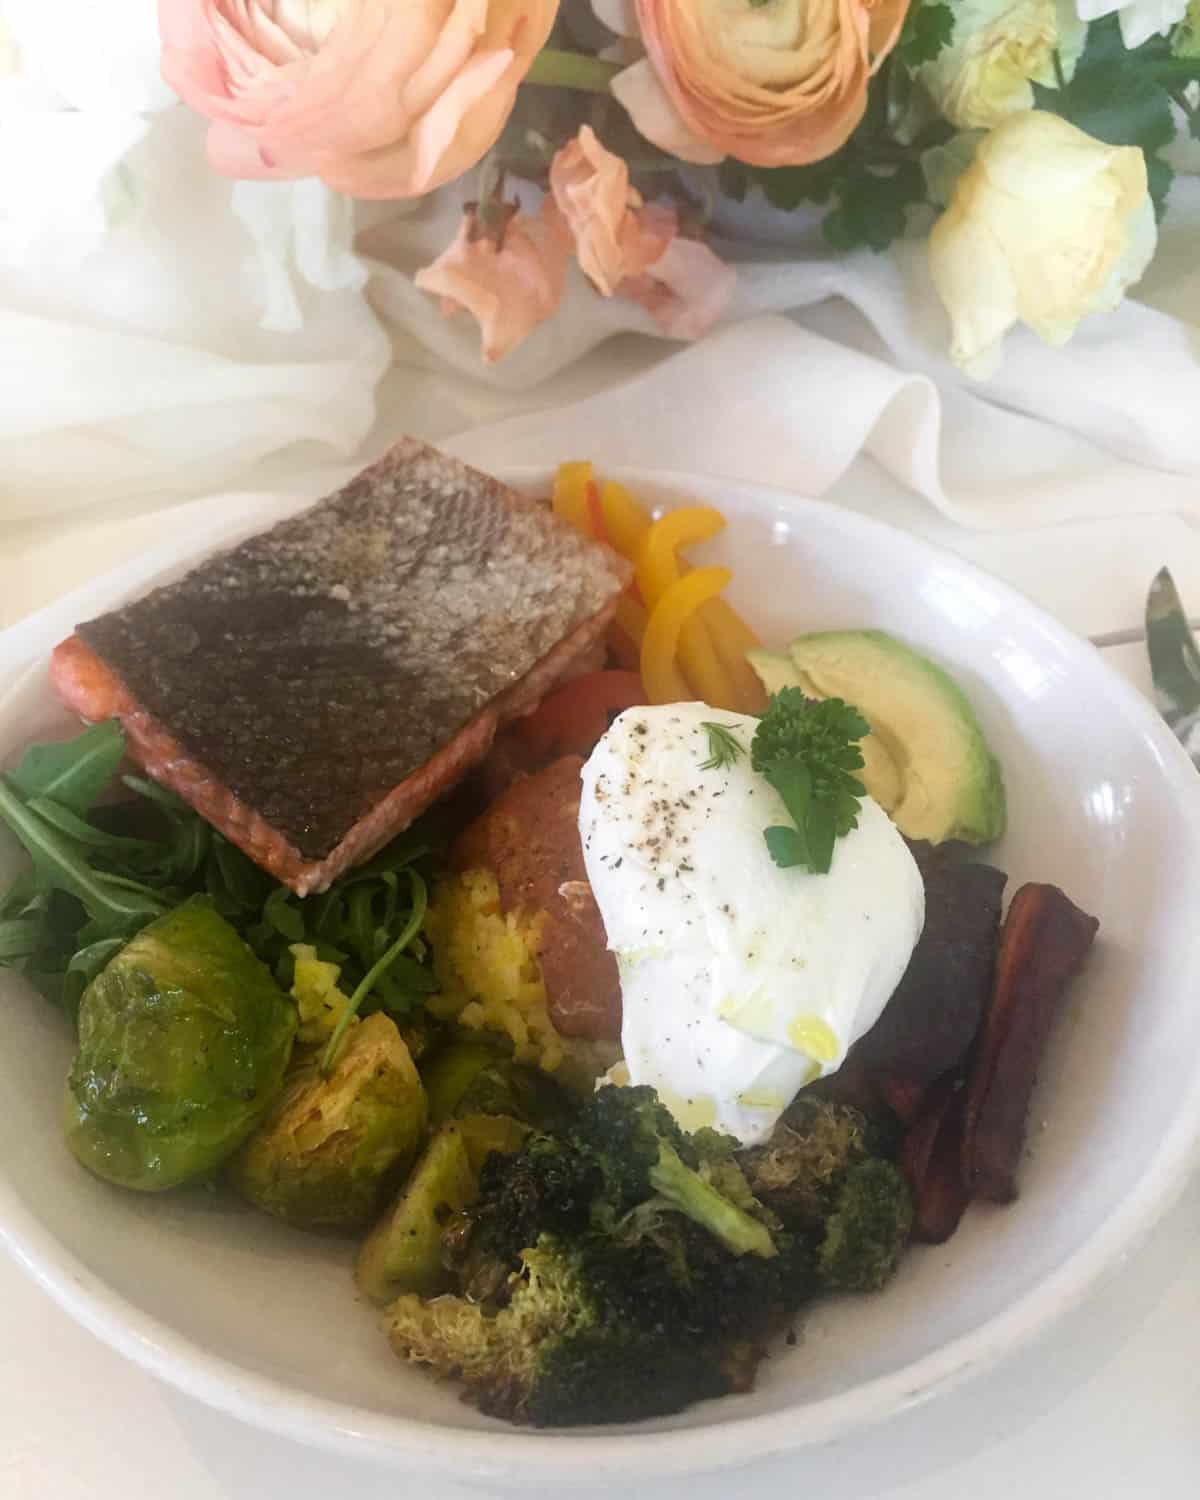 Bowl of roasted salmon, veggies, rice, avocado, and a poached egg on top